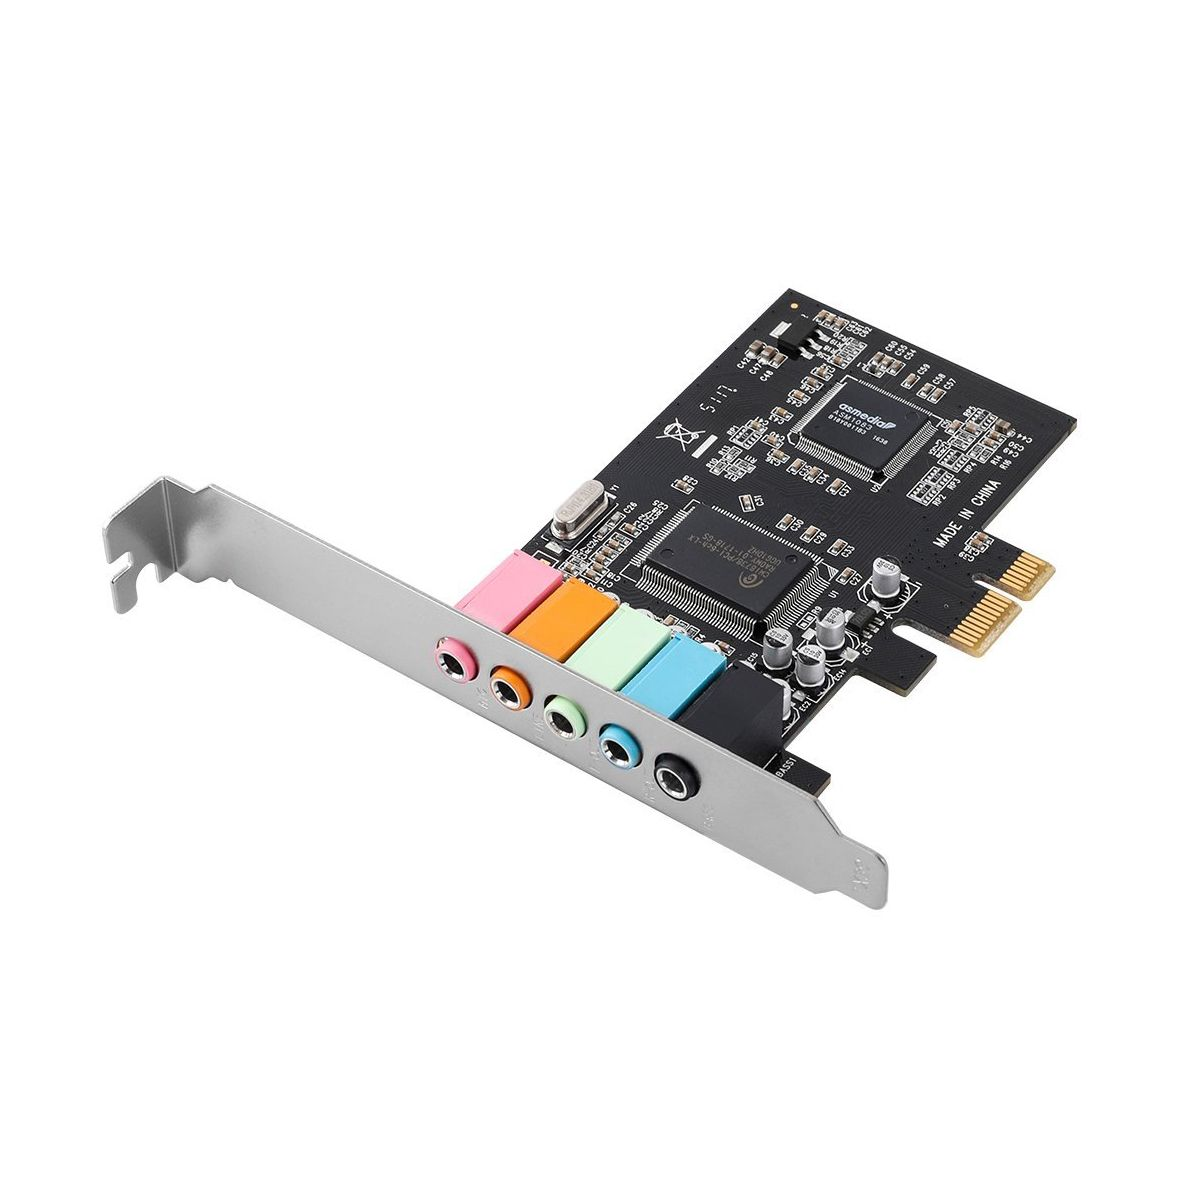 Placa de Som 5.1 PCI Express X1 Direct Sound 3D Empire DW-PCIE